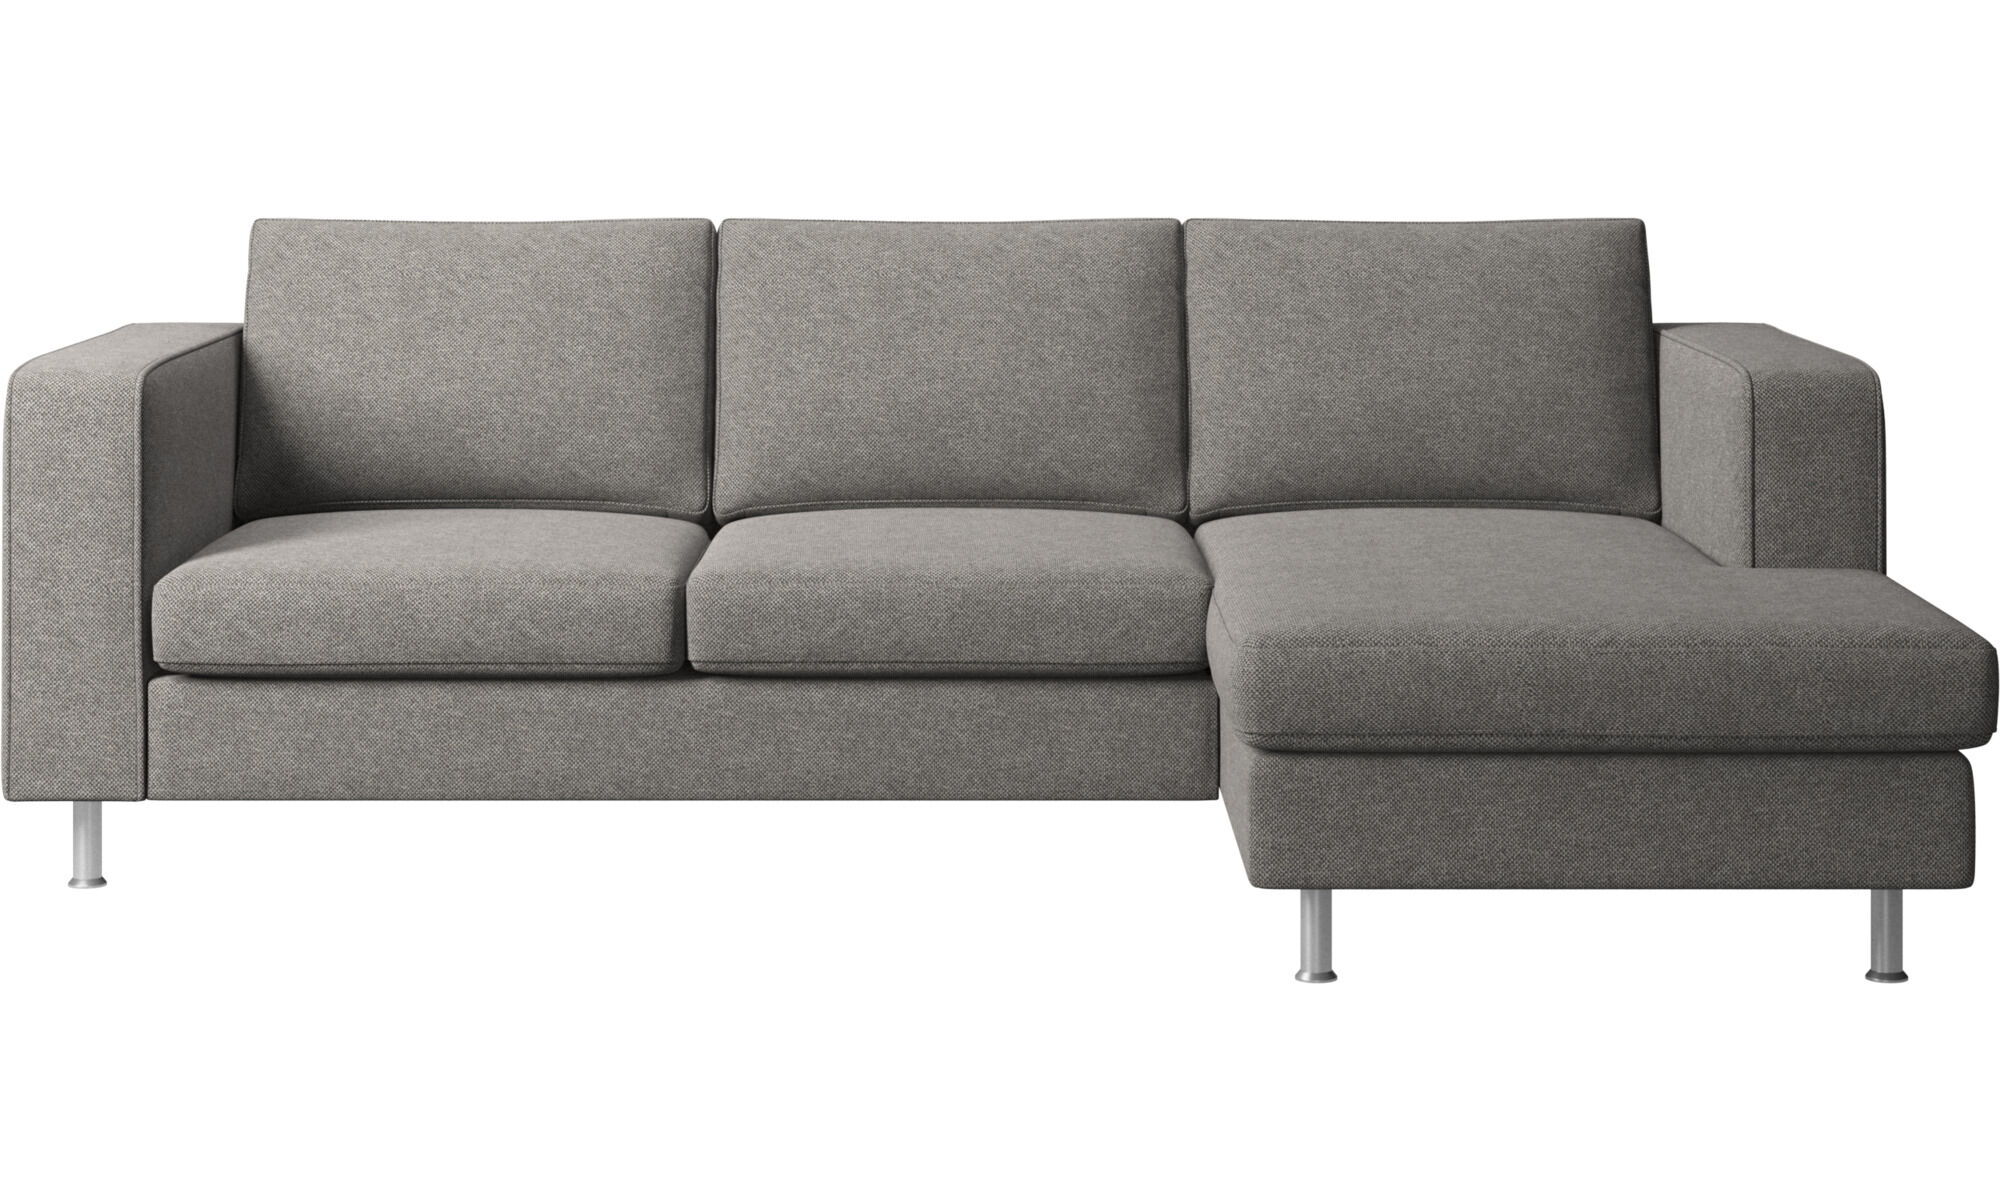 Chaise Lounge Sofas   Indivi 2 Sofa With Resting Unit   Gray   Fabric ...